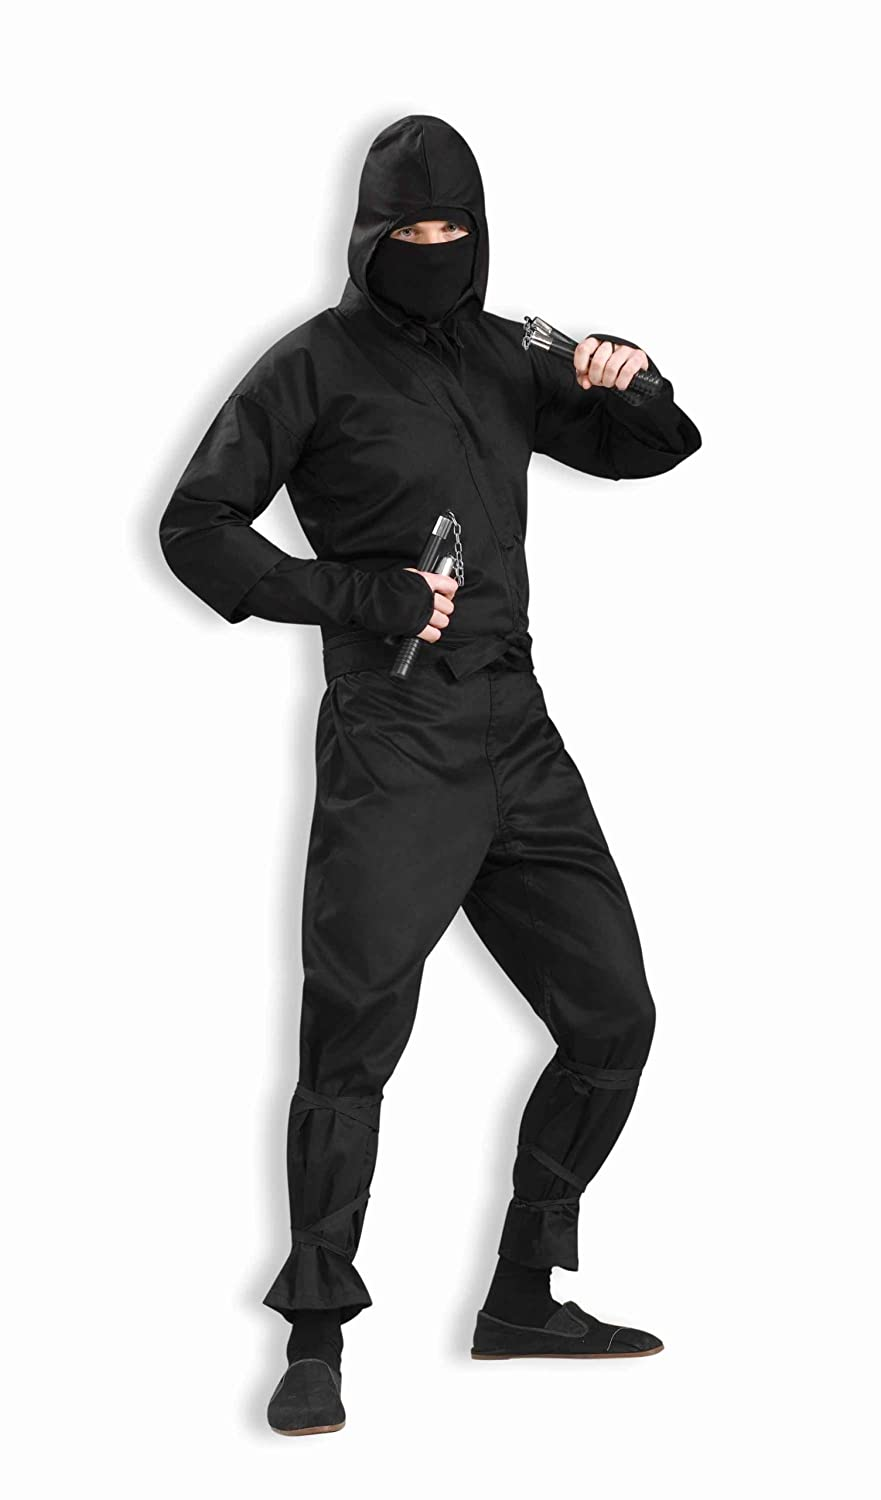 Amazon.com: Forum Novelties Ninja Deluxe Adult Costume ...